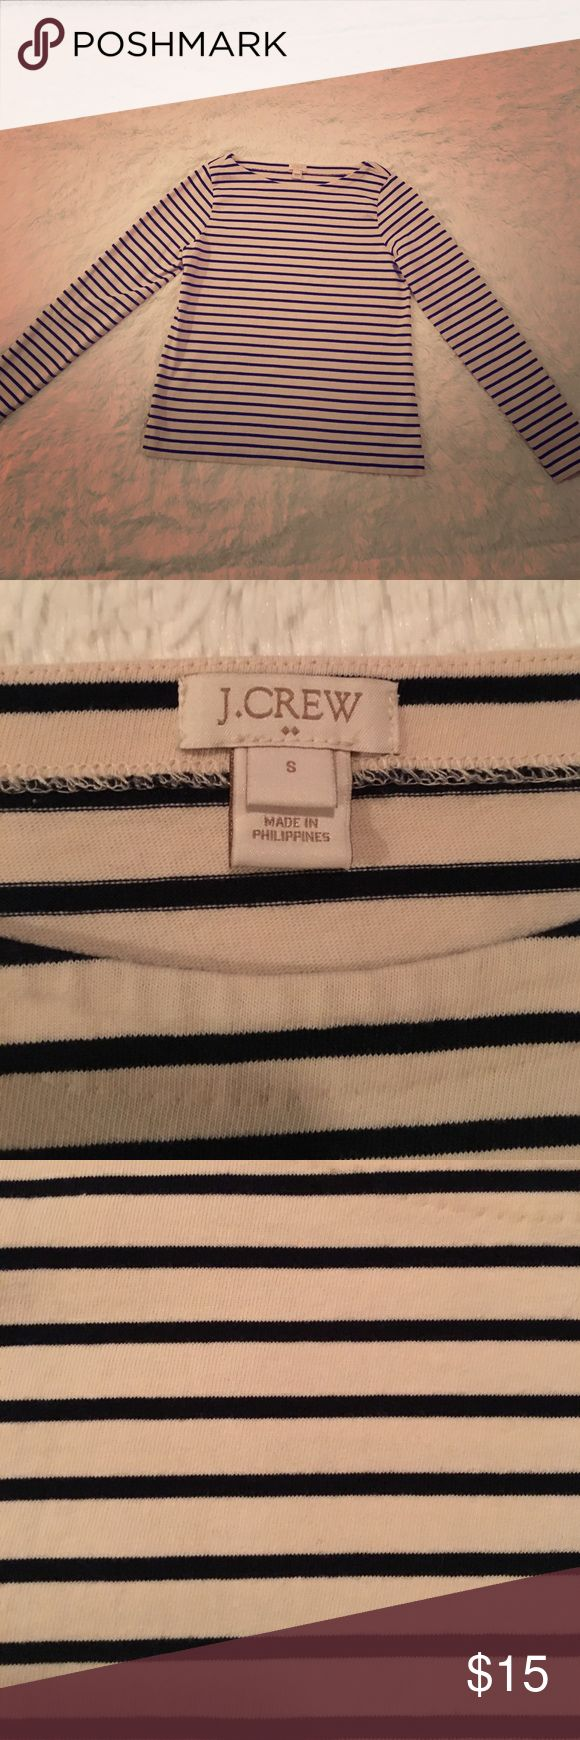 J.Crew Long-Sleeve Navy Striped Boat-Neck shirt Worn only once because I live in Florida and it is always too warm to wear. This is not a light flimsy t-shirt material. It is thicker and better for cooler temperatures J. Crew Sweaters Crew & Scoop Necks